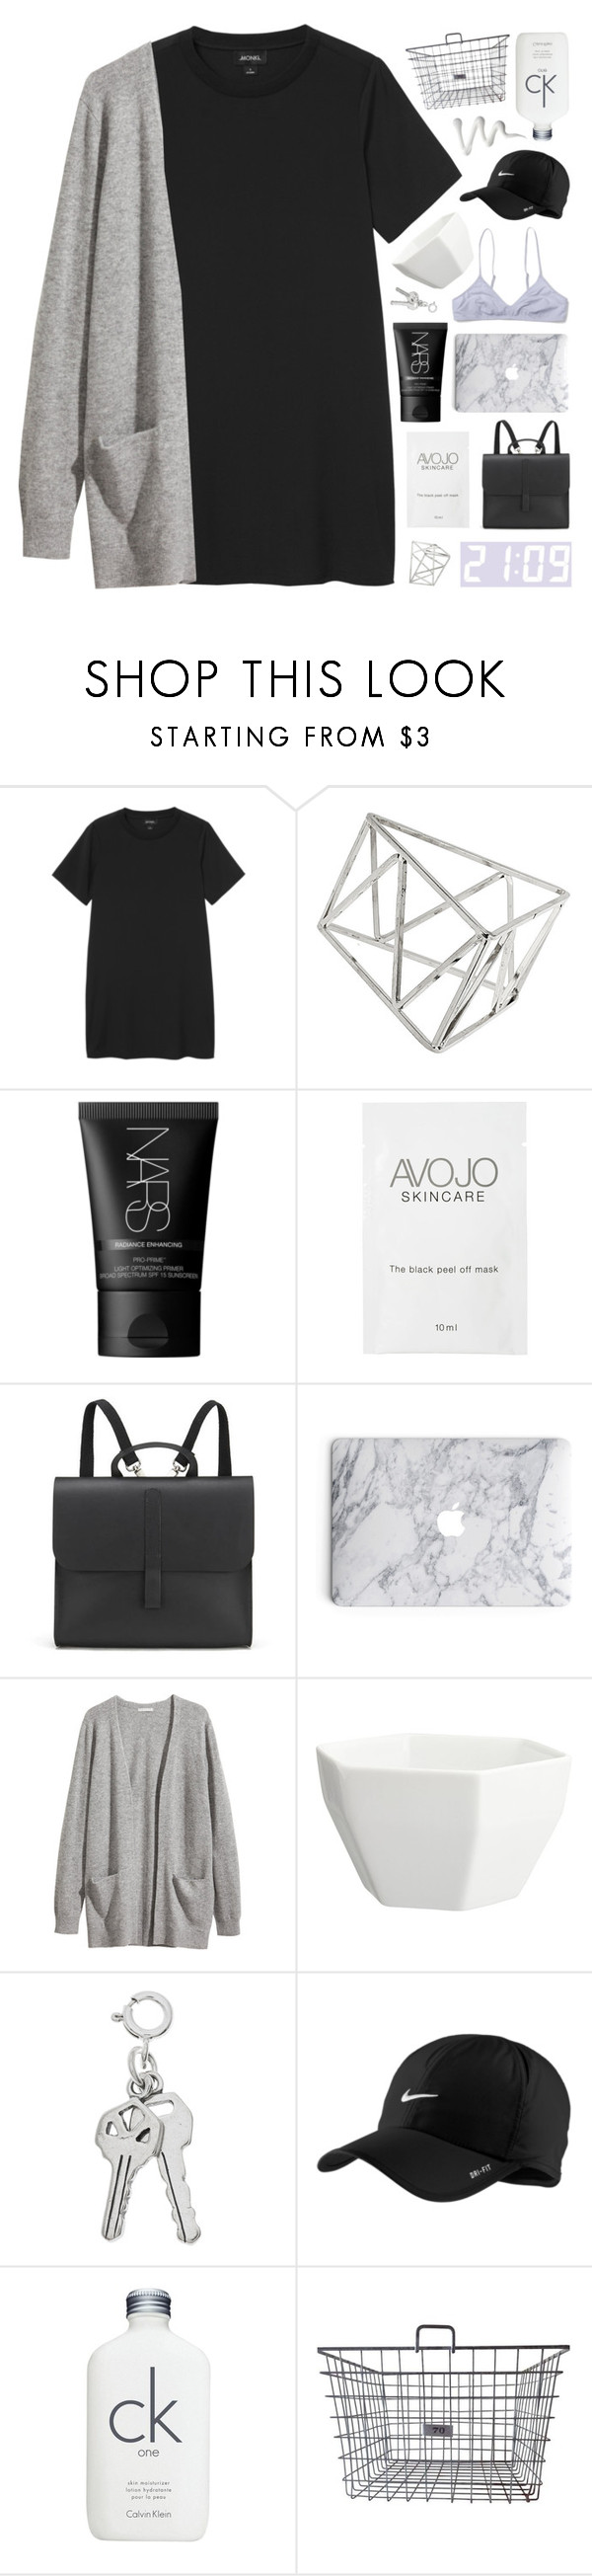 """""""ALL YOU SEE'S THE SKY"""" by celhestial ❤ liked on Polyvore featuring Monki, Topshop, NARS Cosmetics, Danielle Foster, H&M, CB2, NIKE and Calvin Klein"""